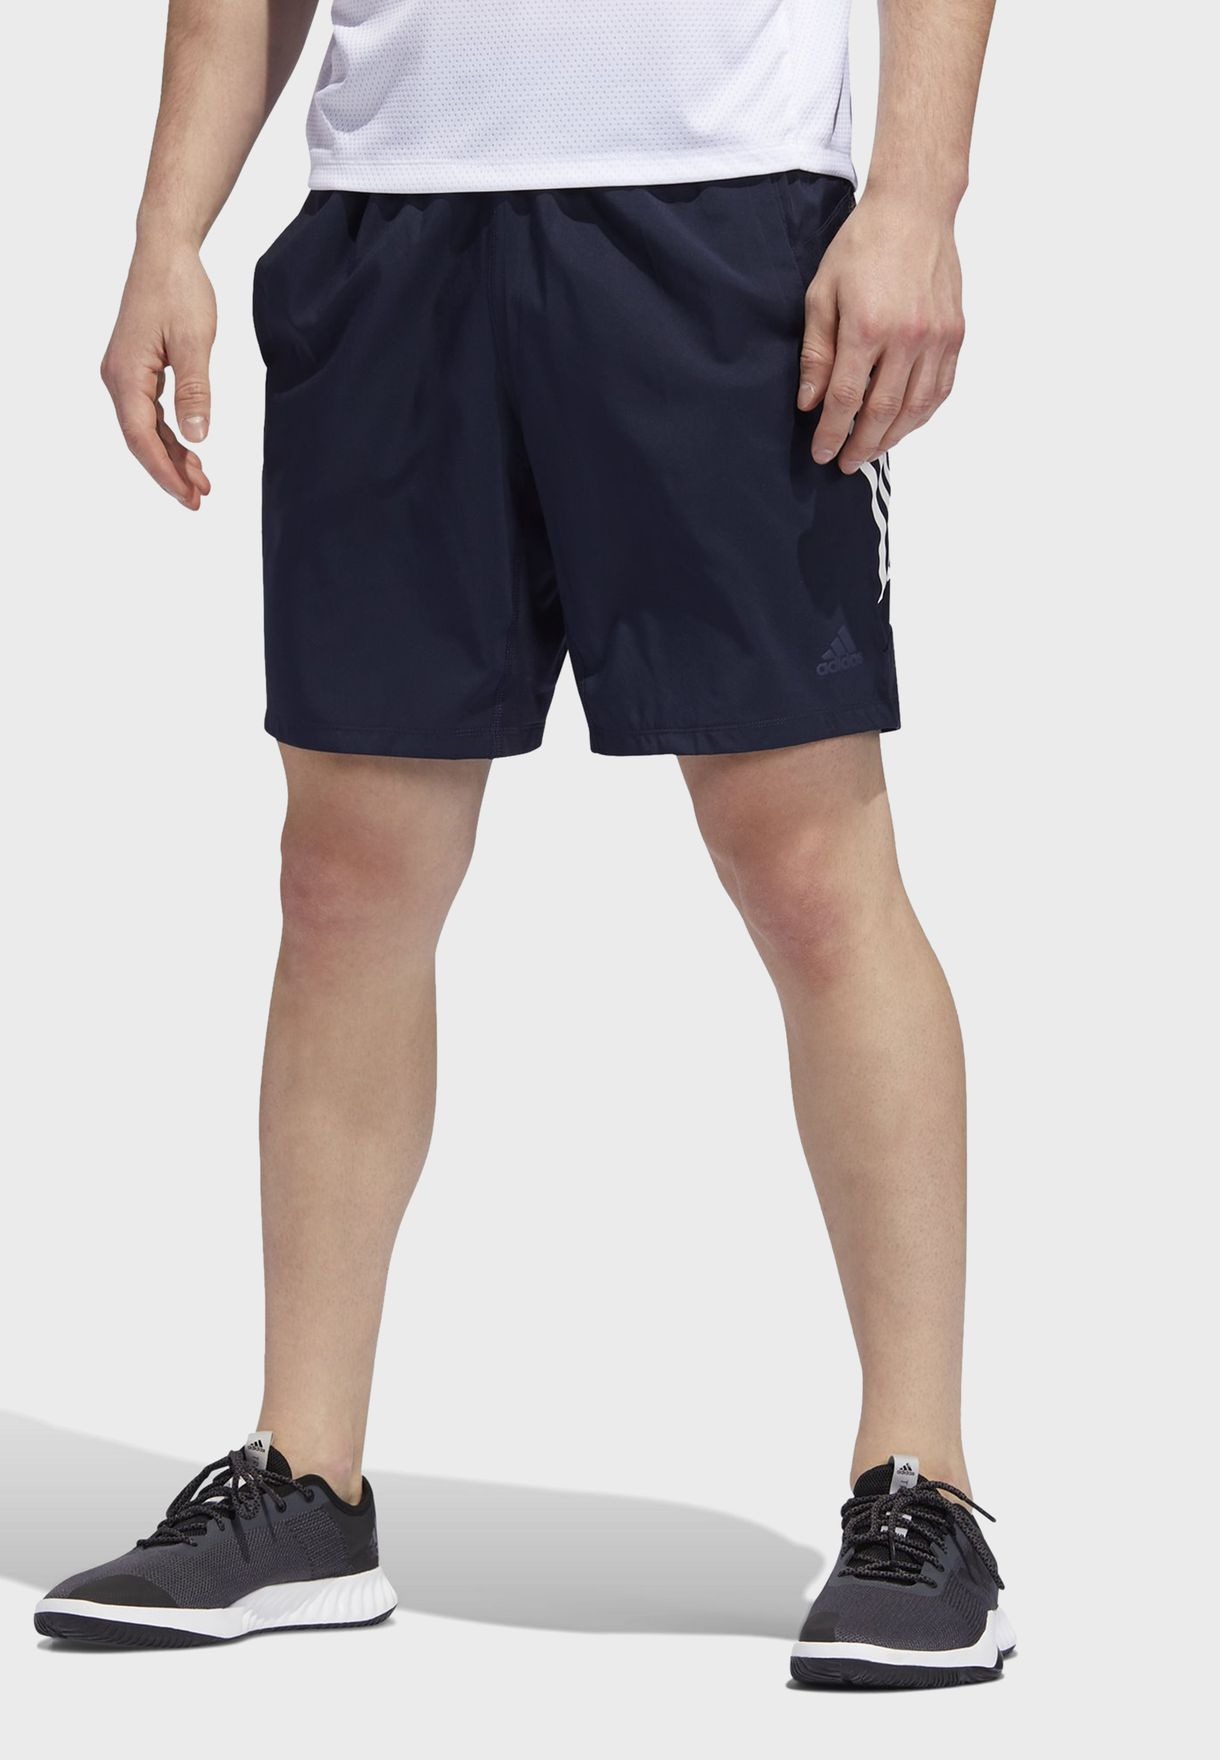 3 Stripes 4KRFT Tech Woven Shorts